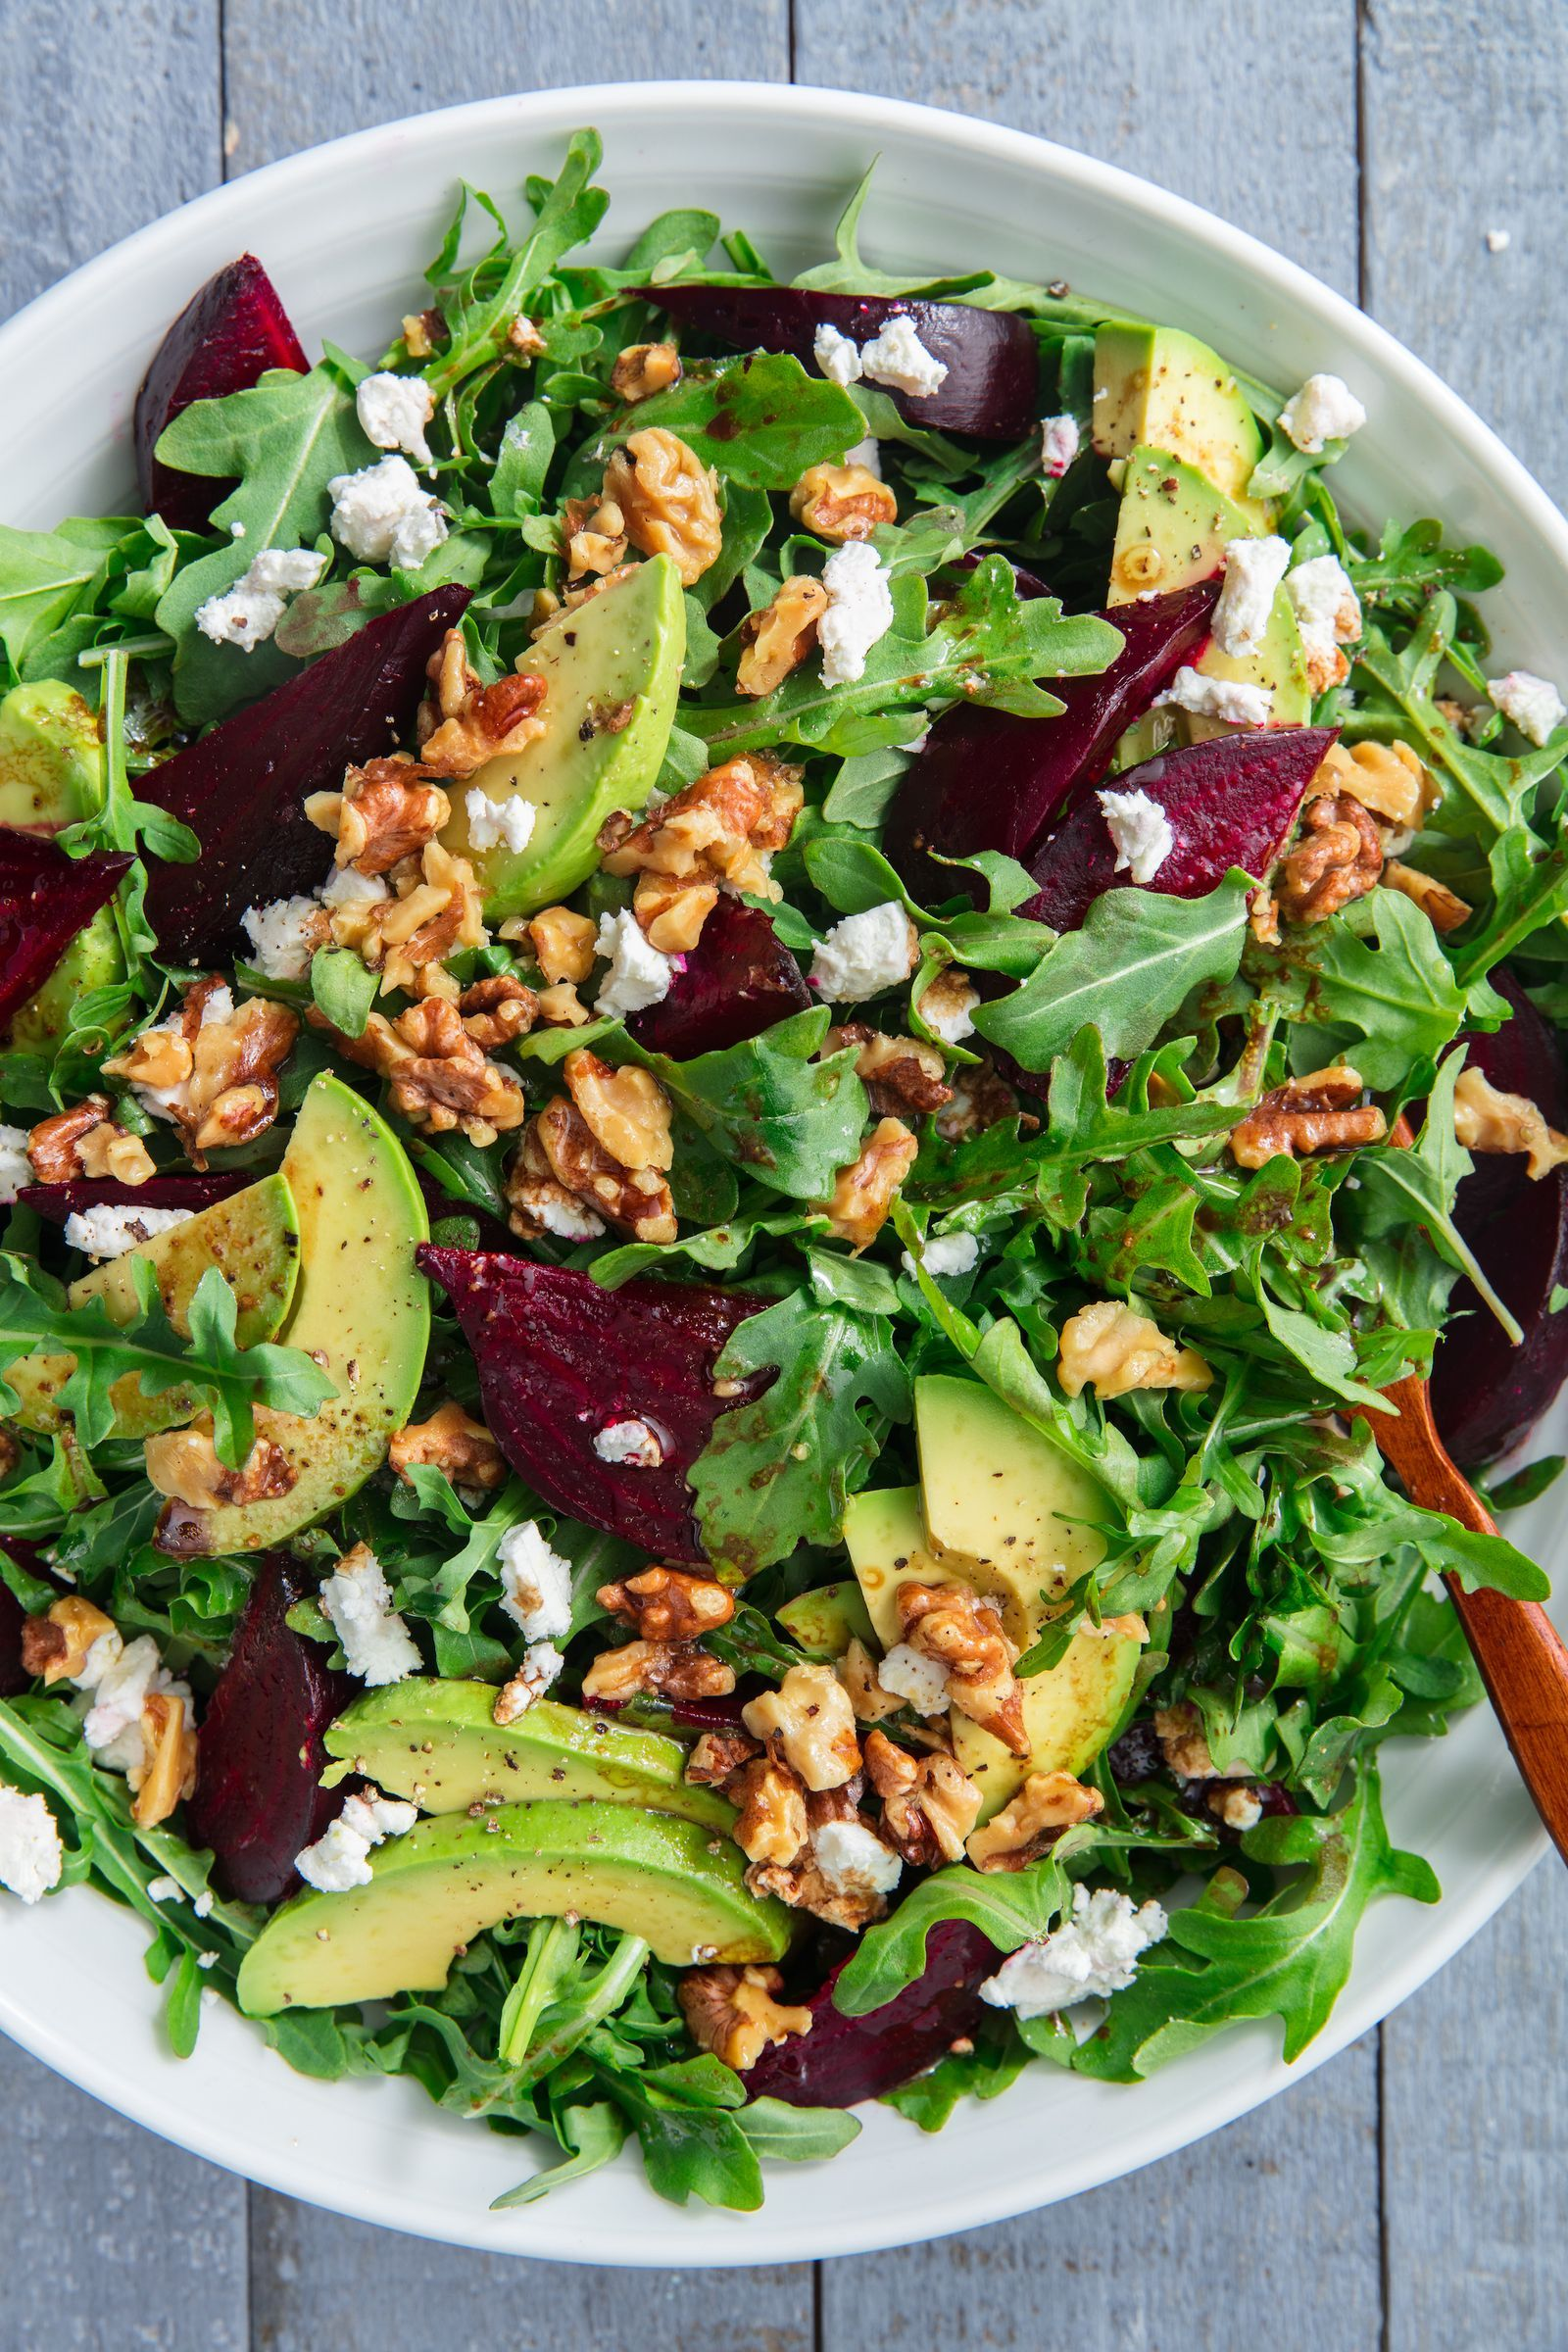 25 Winter Salads You'll Actually Want To Eat